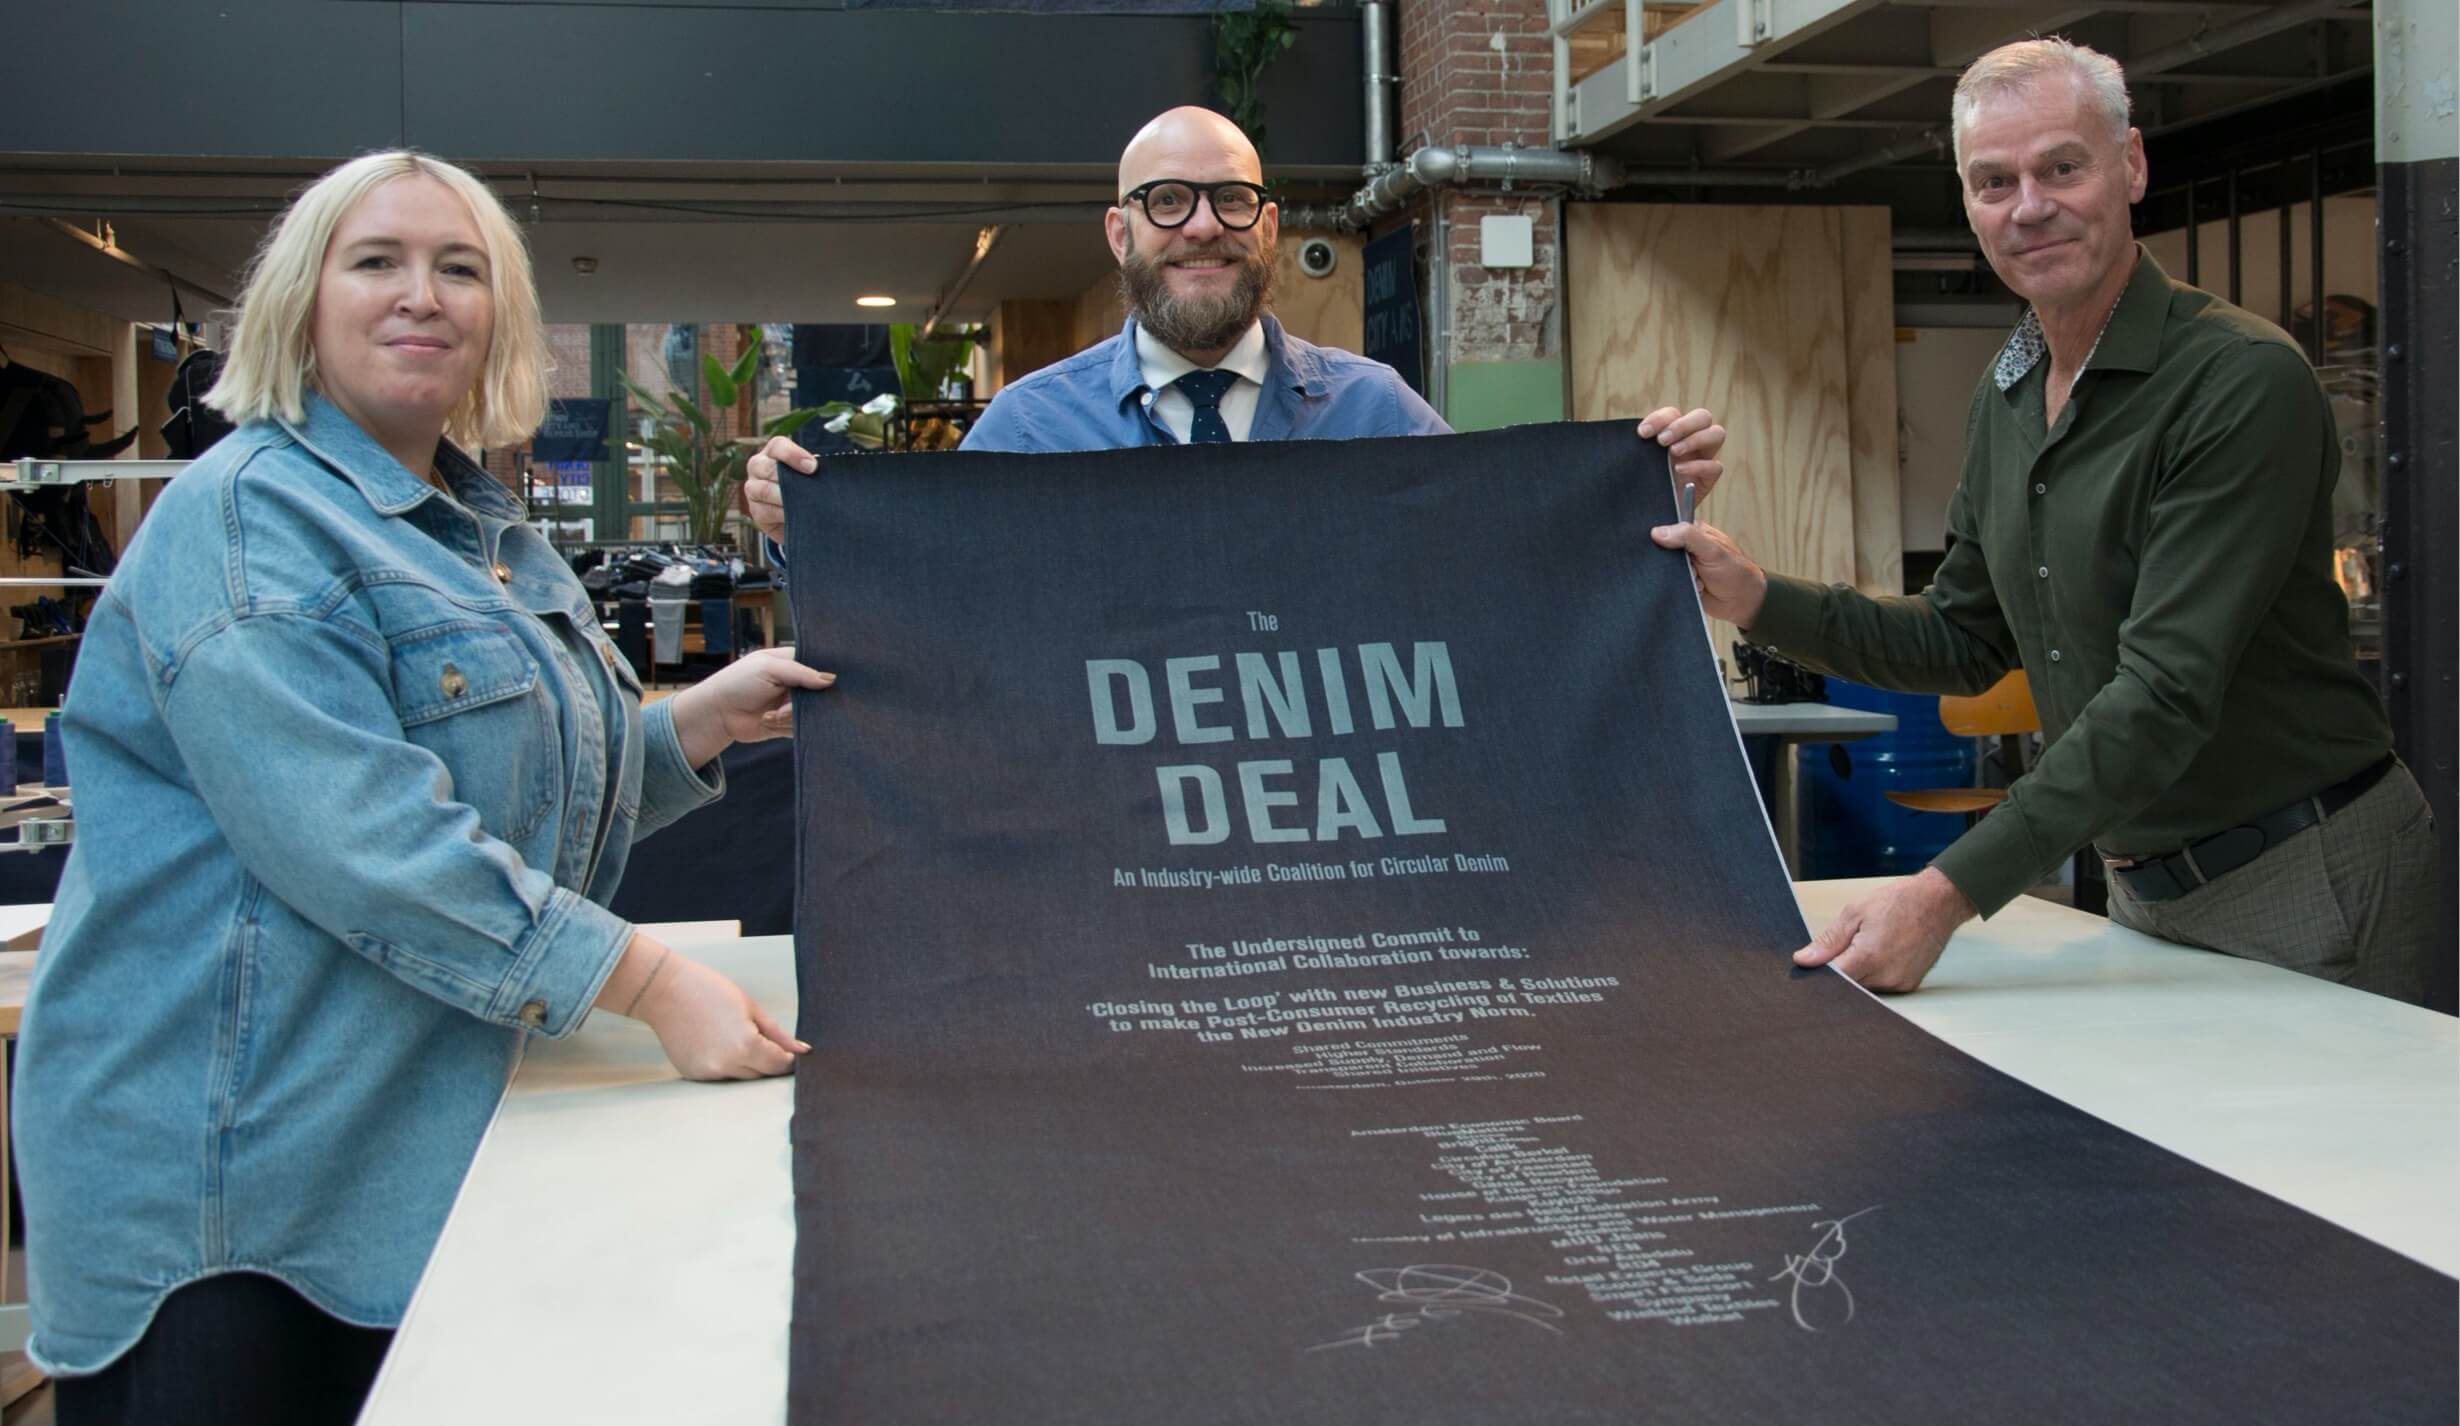 Responsible design denim deal